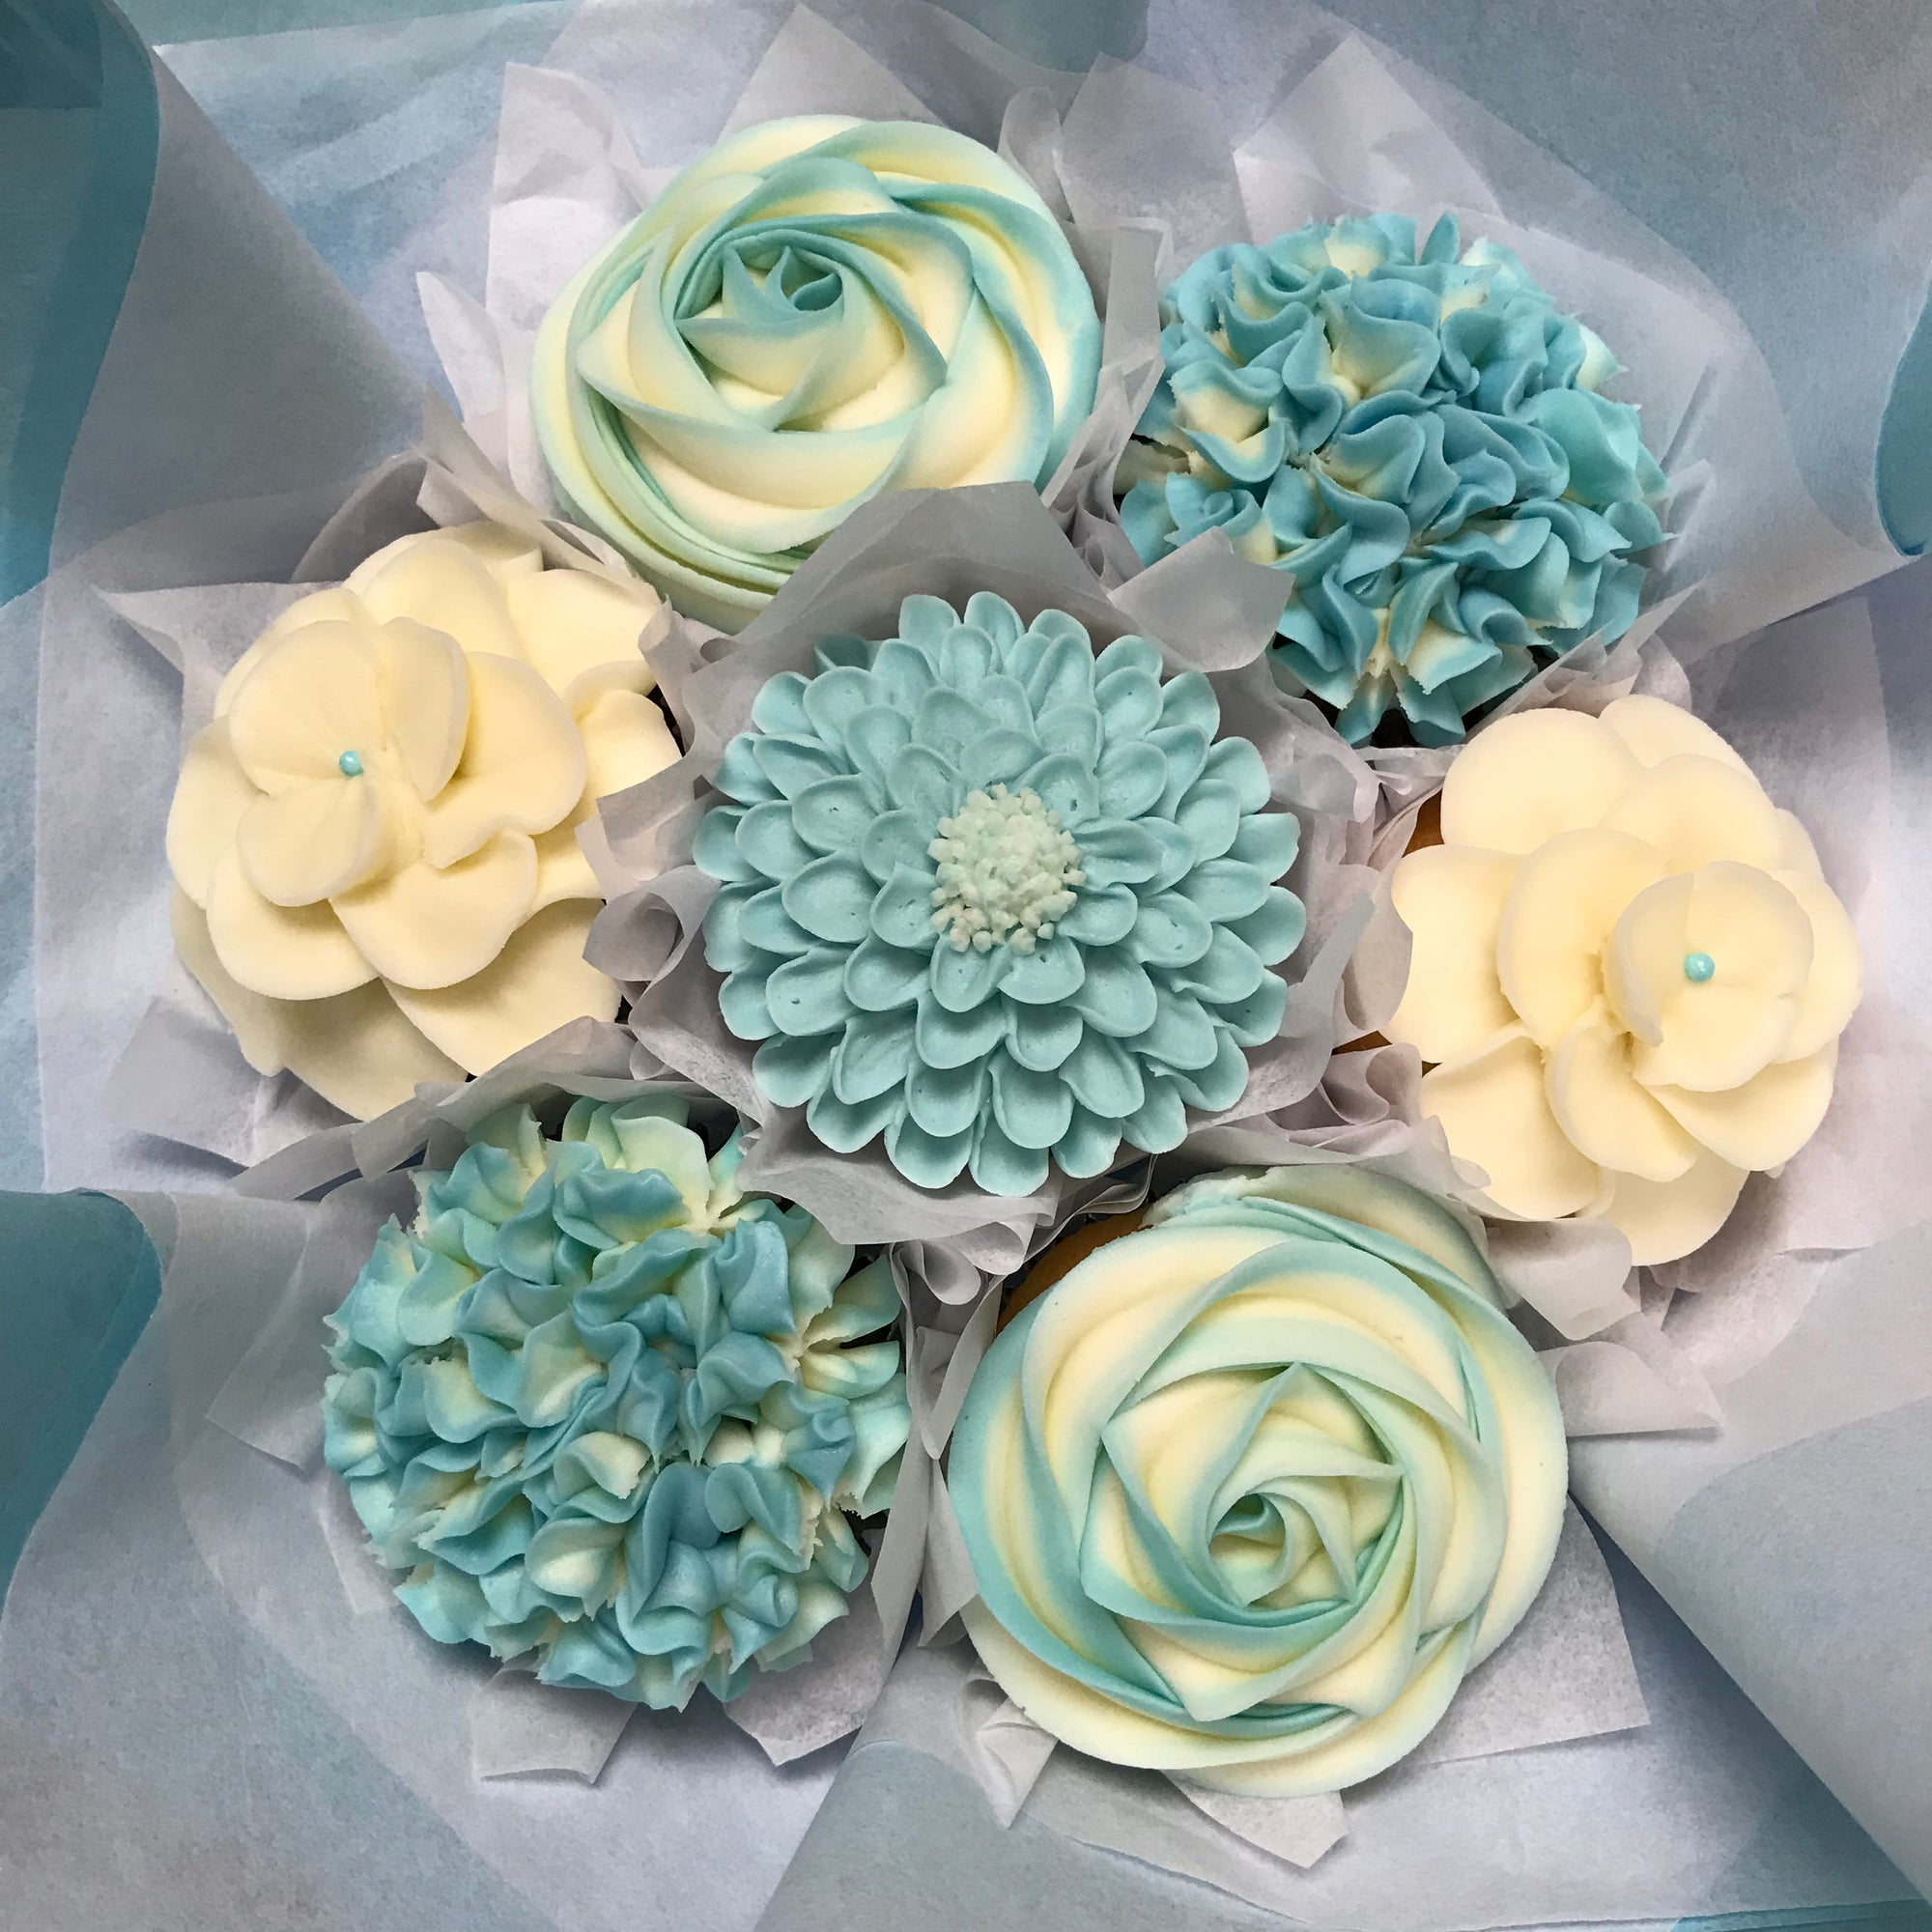 Baby blue cupcakes edible floral desserts cupcake bouquets cupcake bouquets shop faqs about delivery contact baby blue izmirmasajfo Choice Image